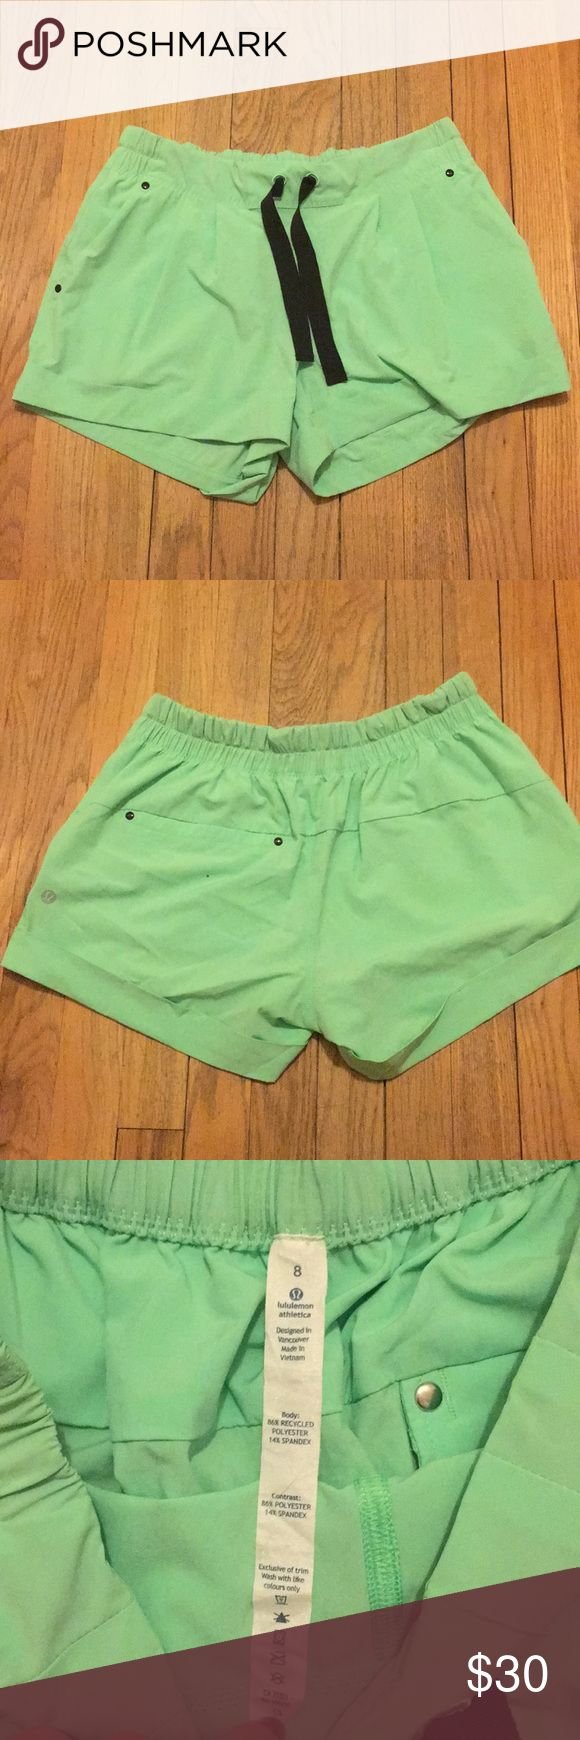 Neon Green Lululemon Shorts Very cute Lululemon Neon Green shorts with two front pockets and one back pocket with black tie. Super cute comfy shorts that have only been worn once. Size 8! lululemon athletica Shorts